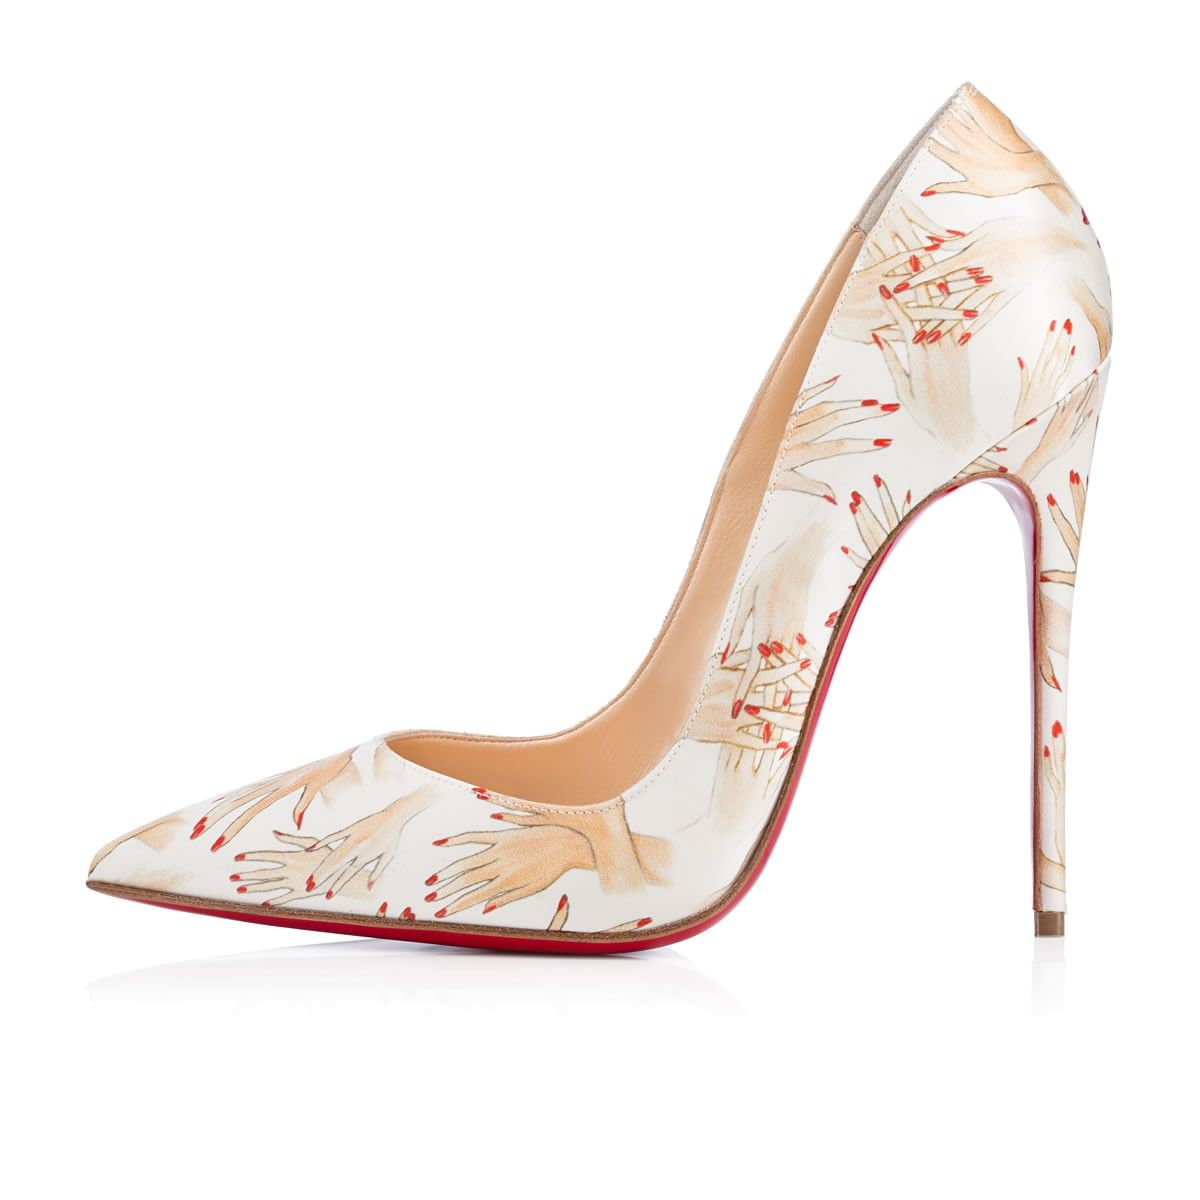 louboutin so kate shop online